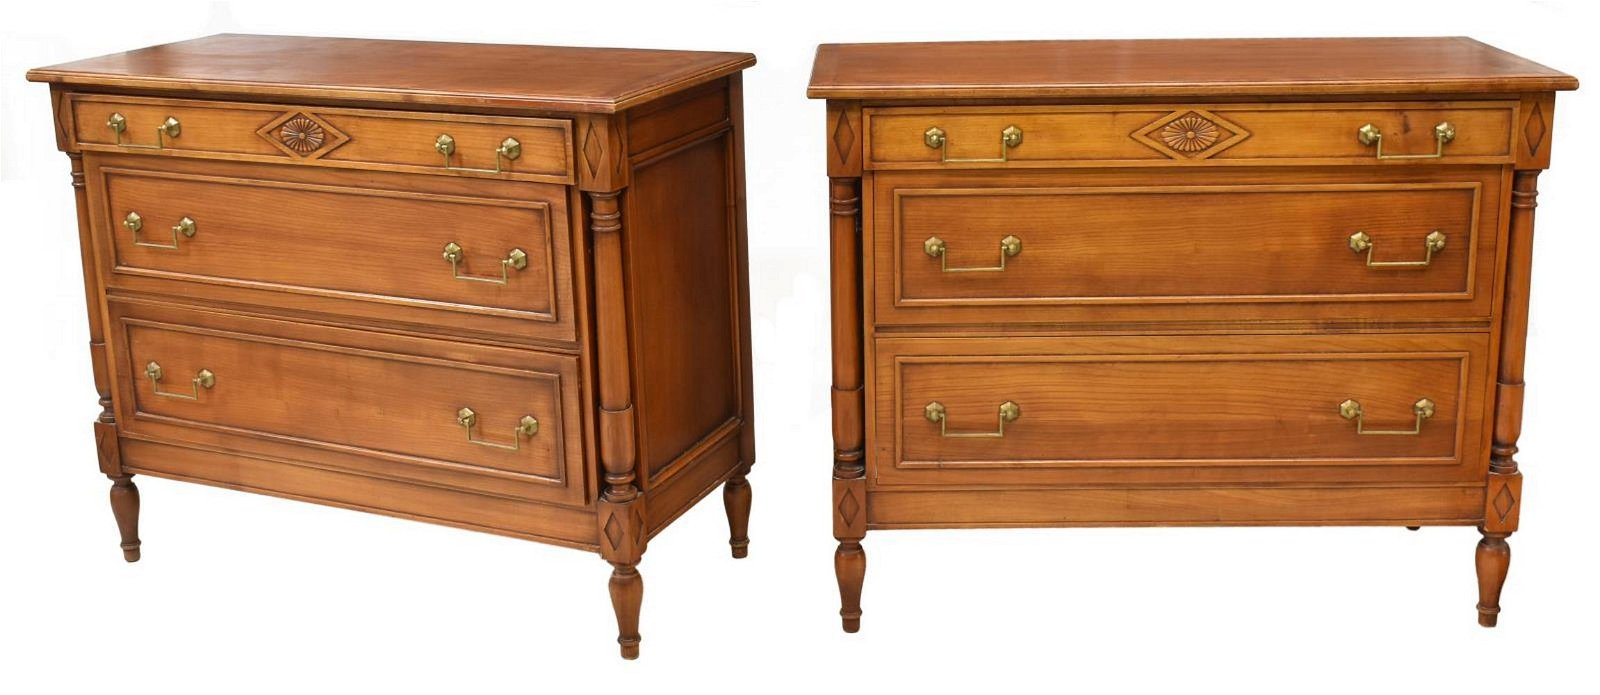 (2) FRENCH DIRECTOIRE STYLE FRUITWOOD COMMODES